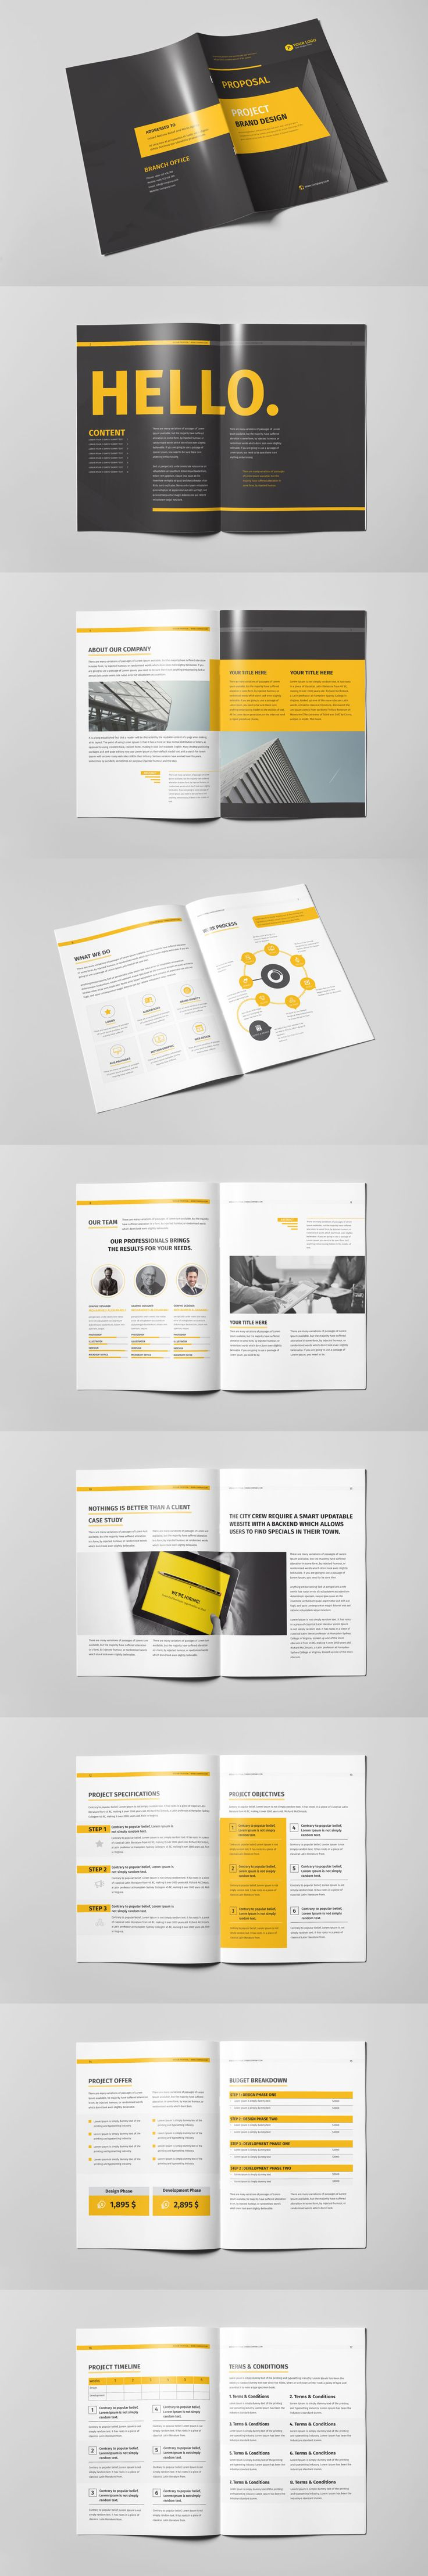 Professional, Clean and Modern 18 Pages Corporate Business Brochure Template InDesign INDD